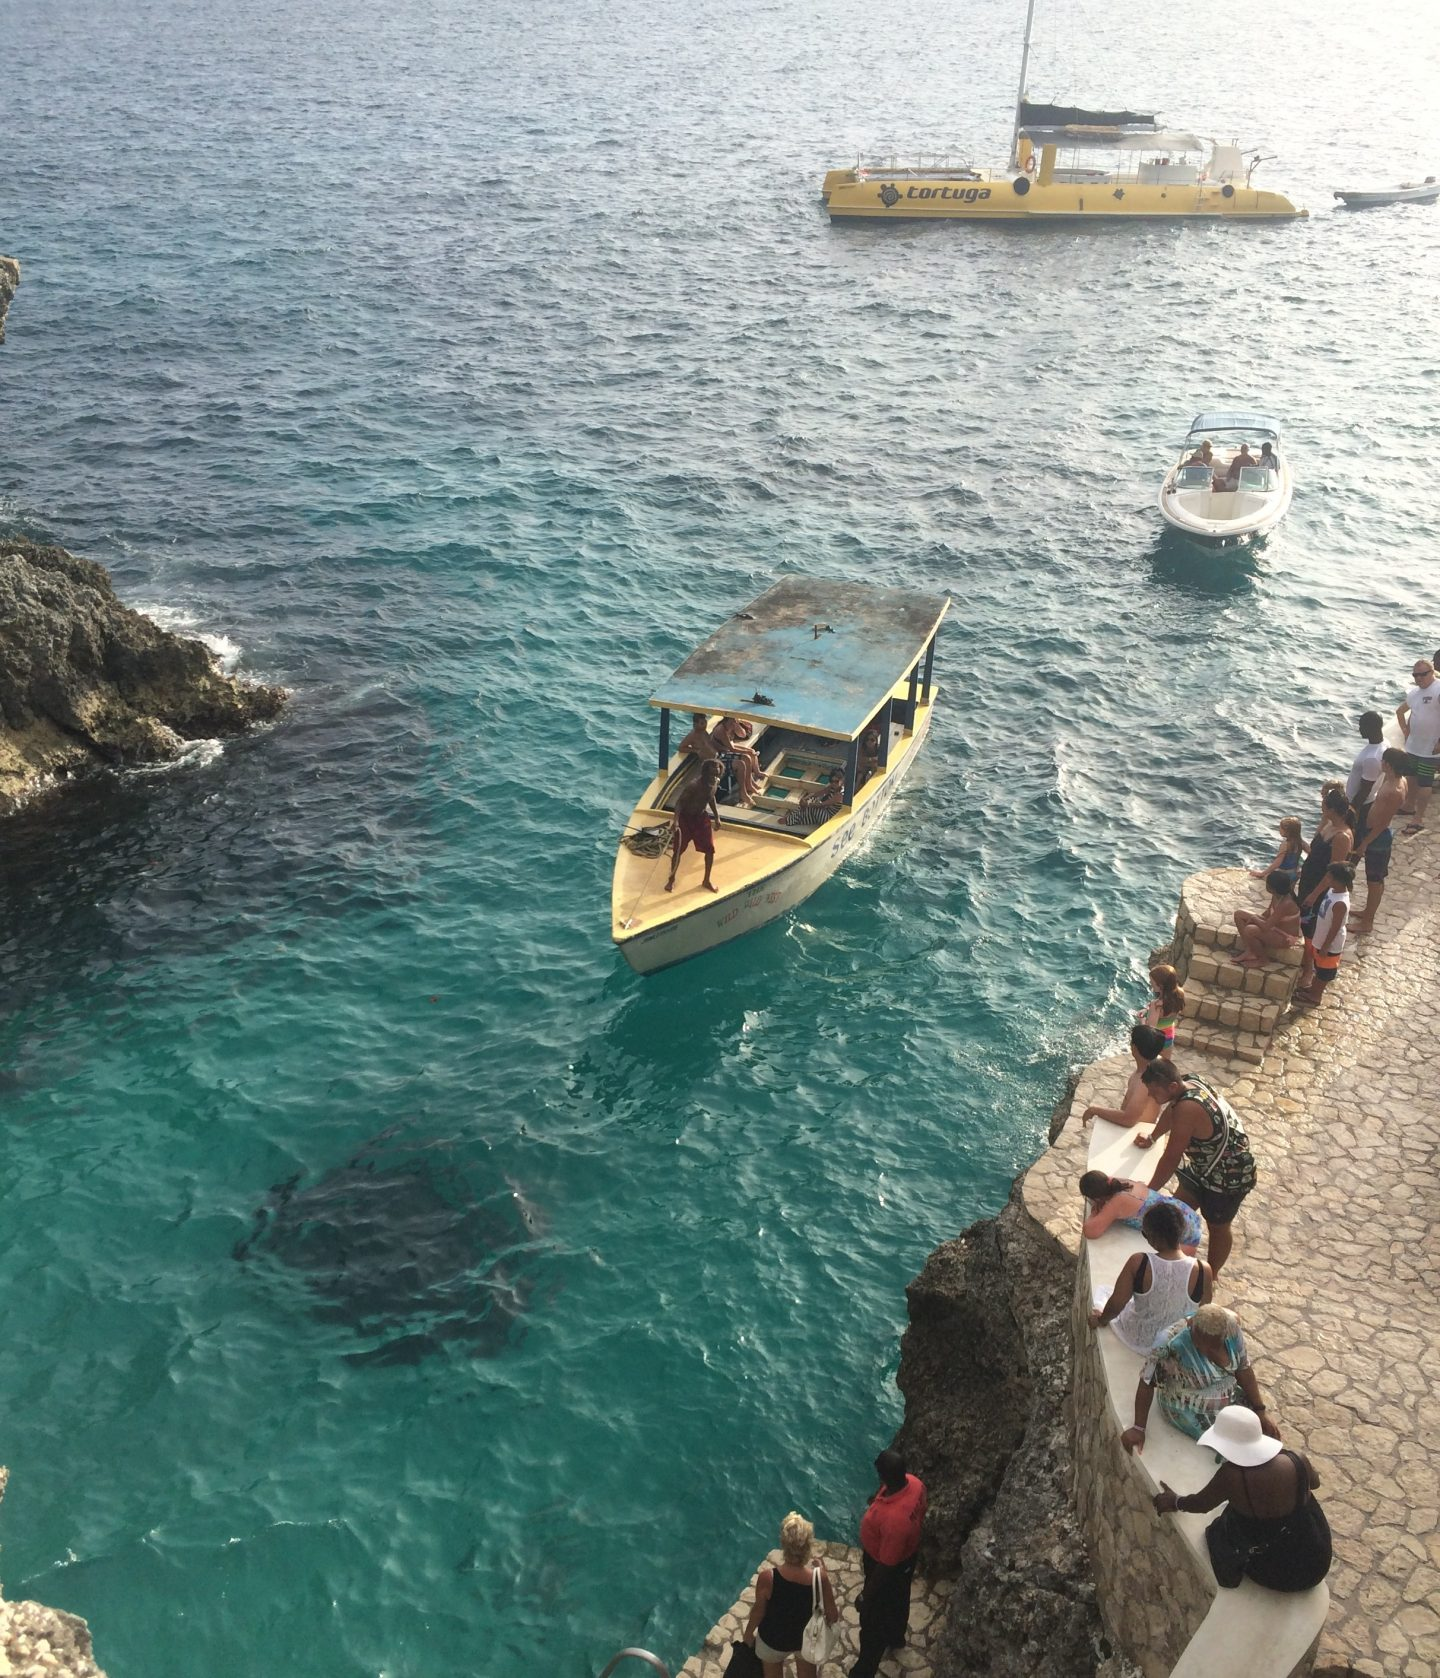 Rick's Cafe in Negril - one of the best places to visit in Jamaica